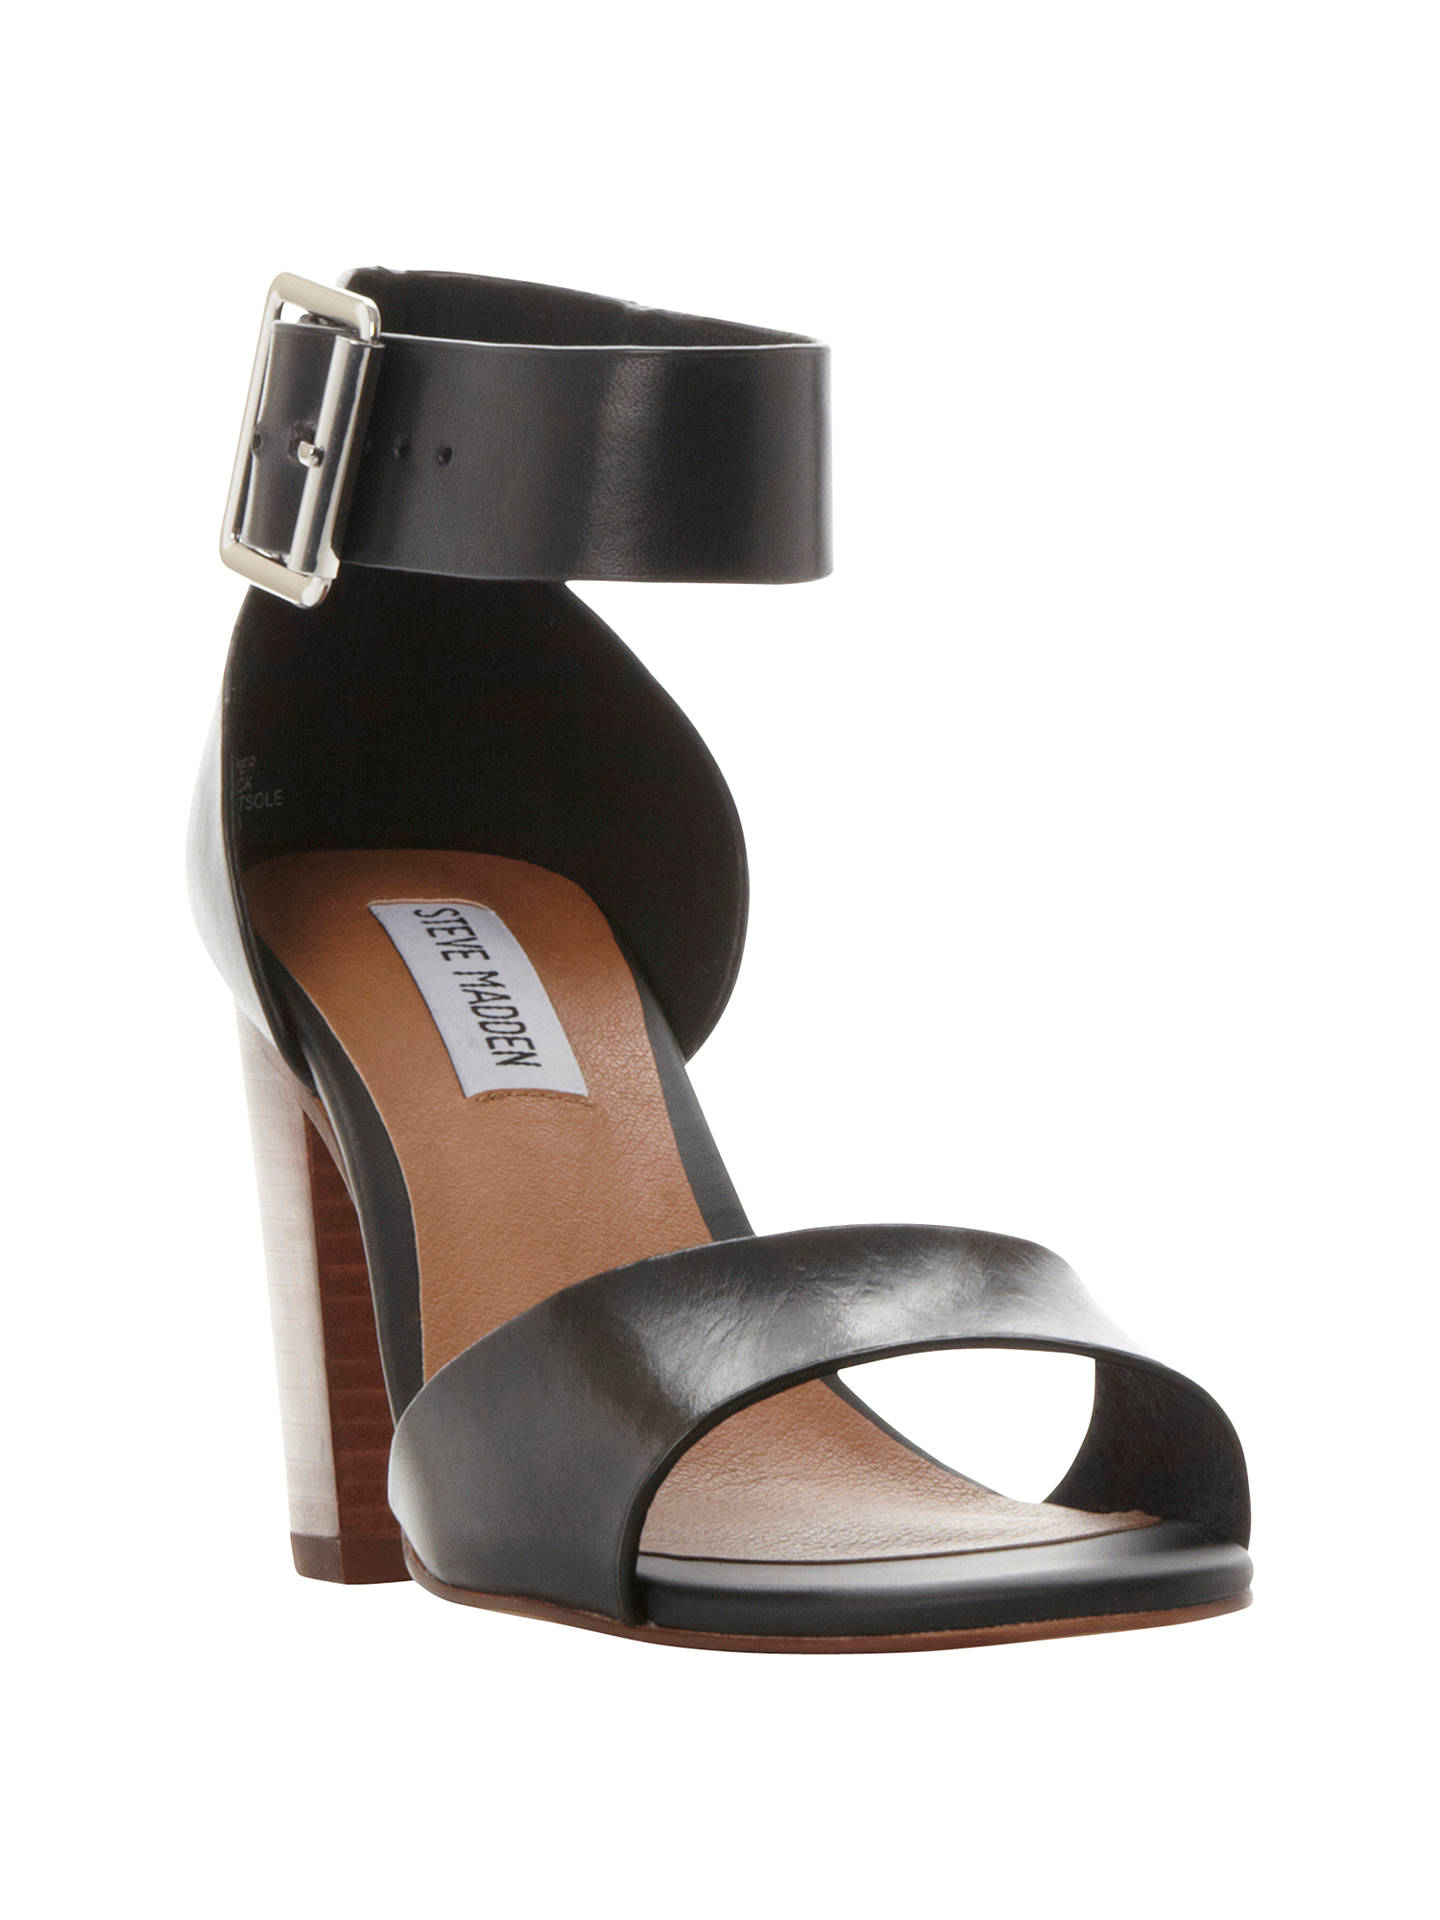 b8e7b6d5f7e Steve Madden Estoria Block Heeled Sandals at John Lewis & Partners